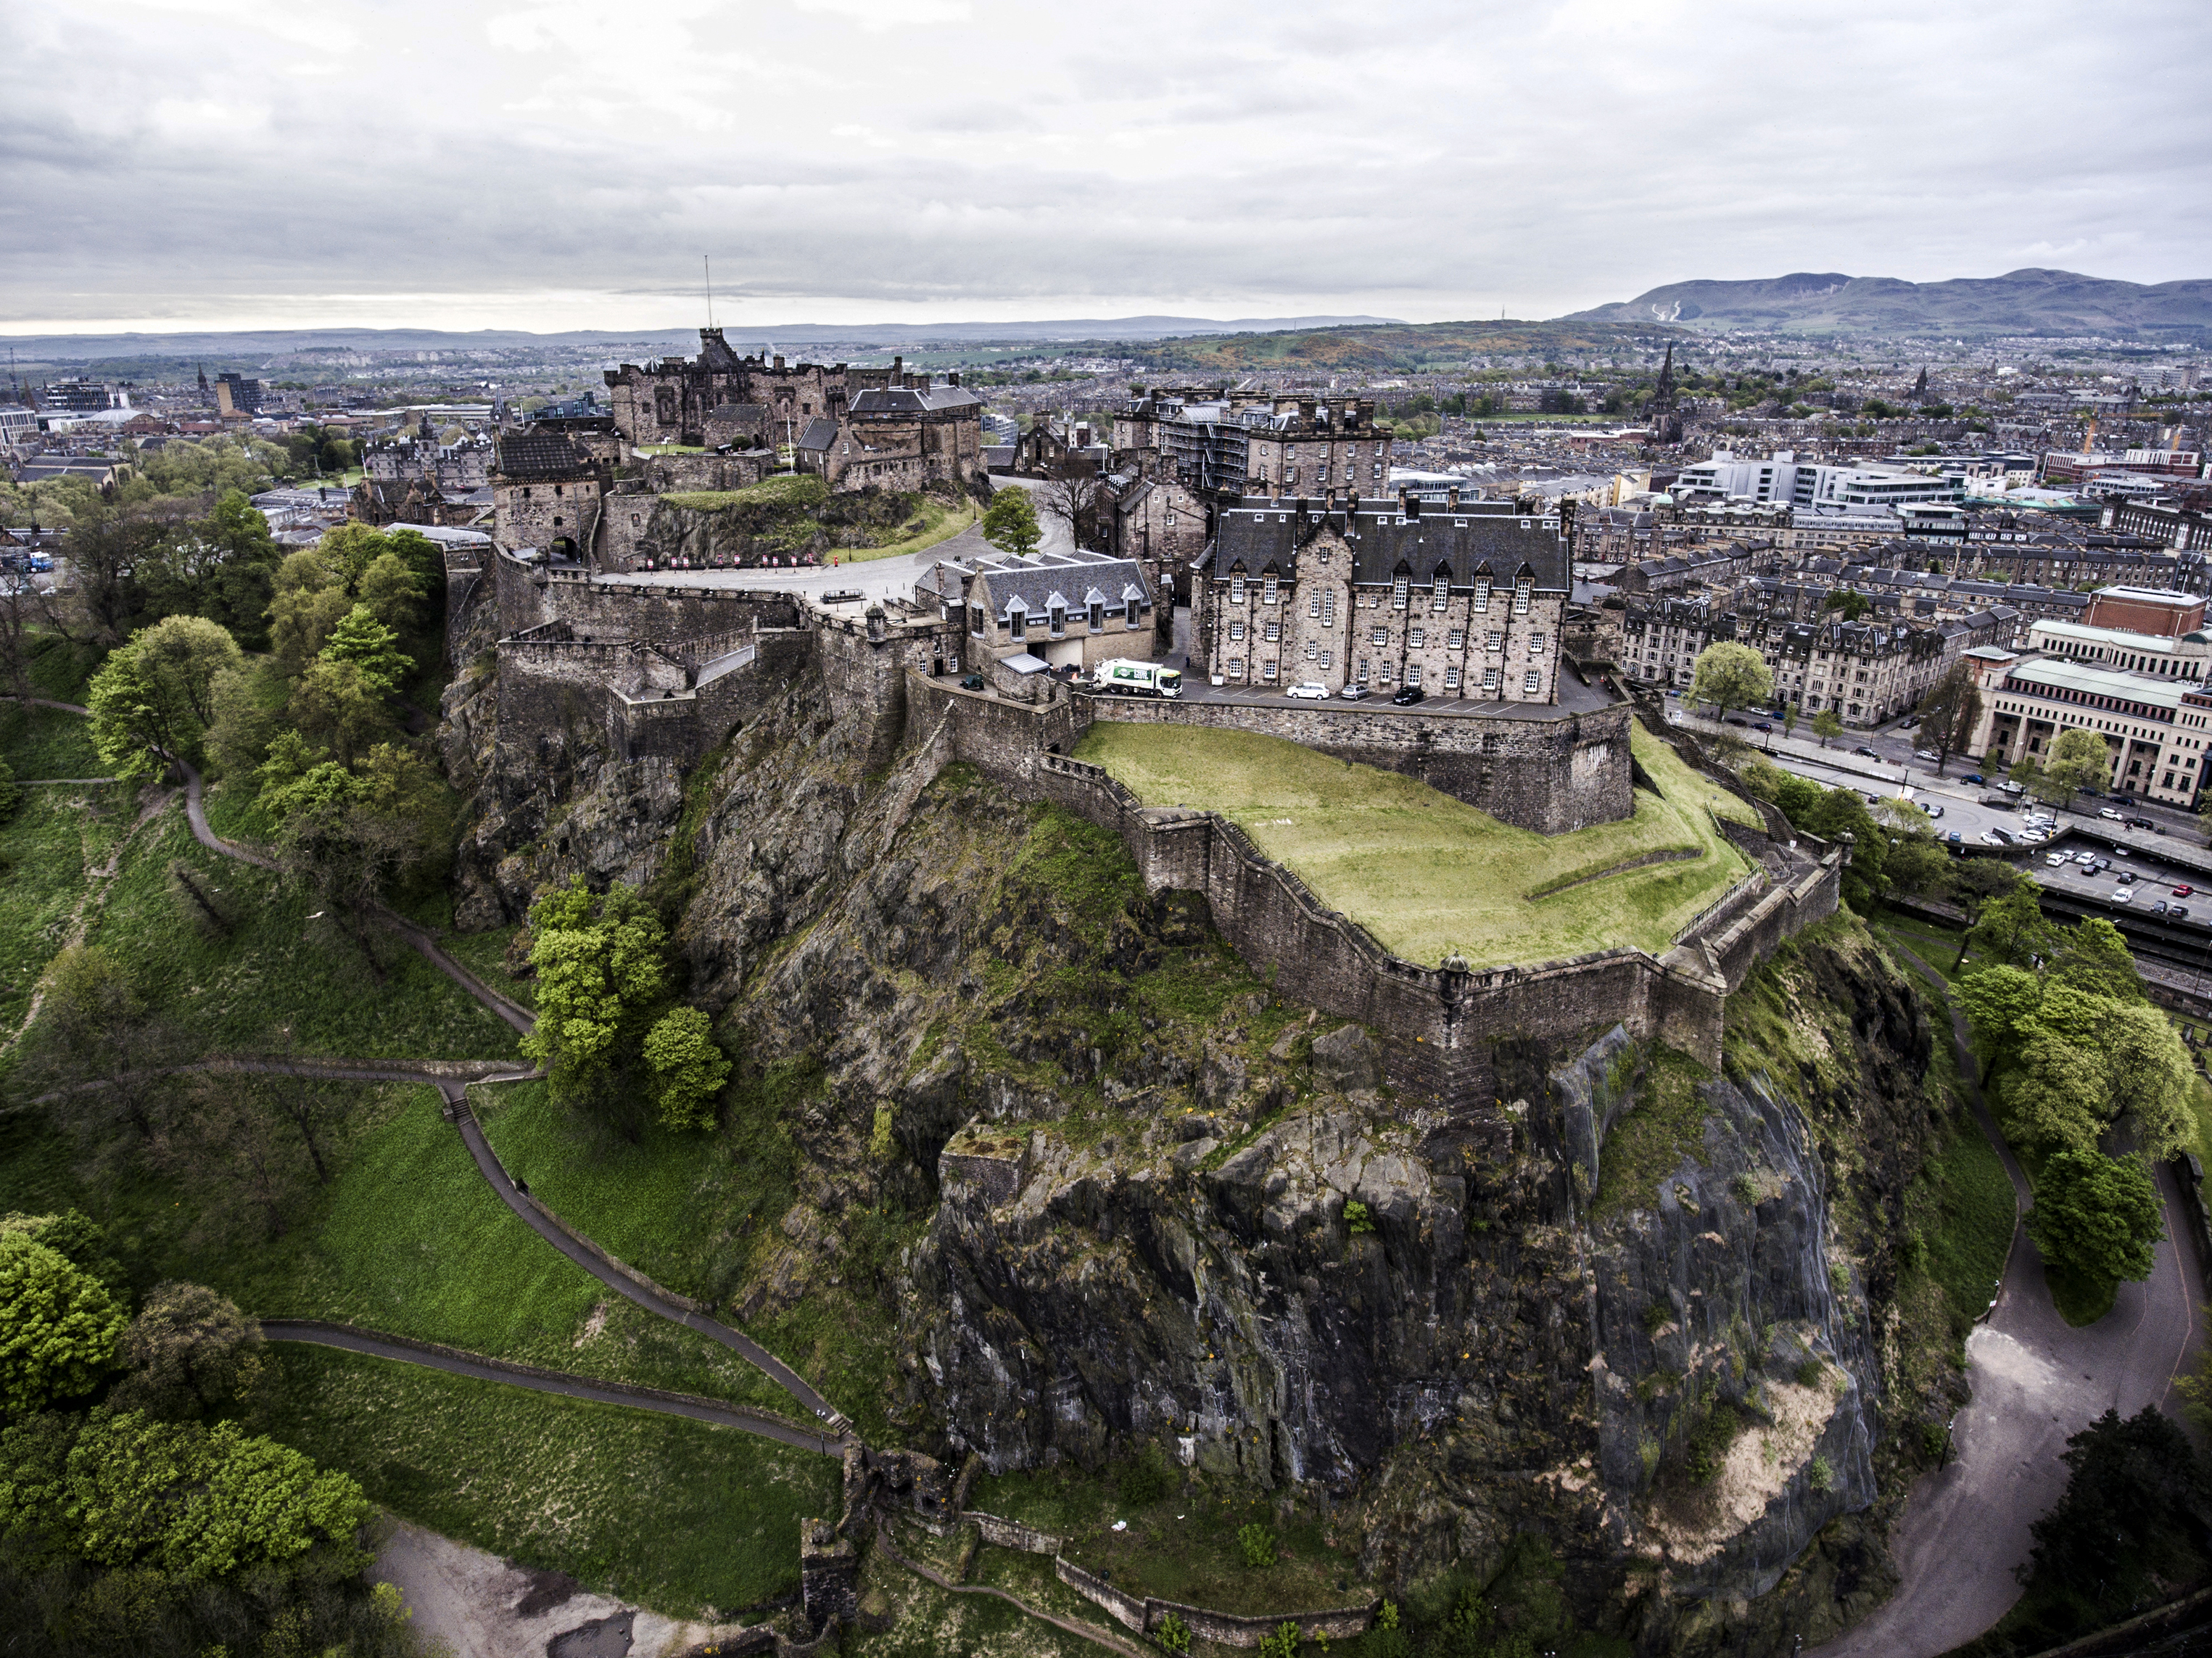 Edinburgh city the historic Castle on Rock cloudy Day Aerial shot 4